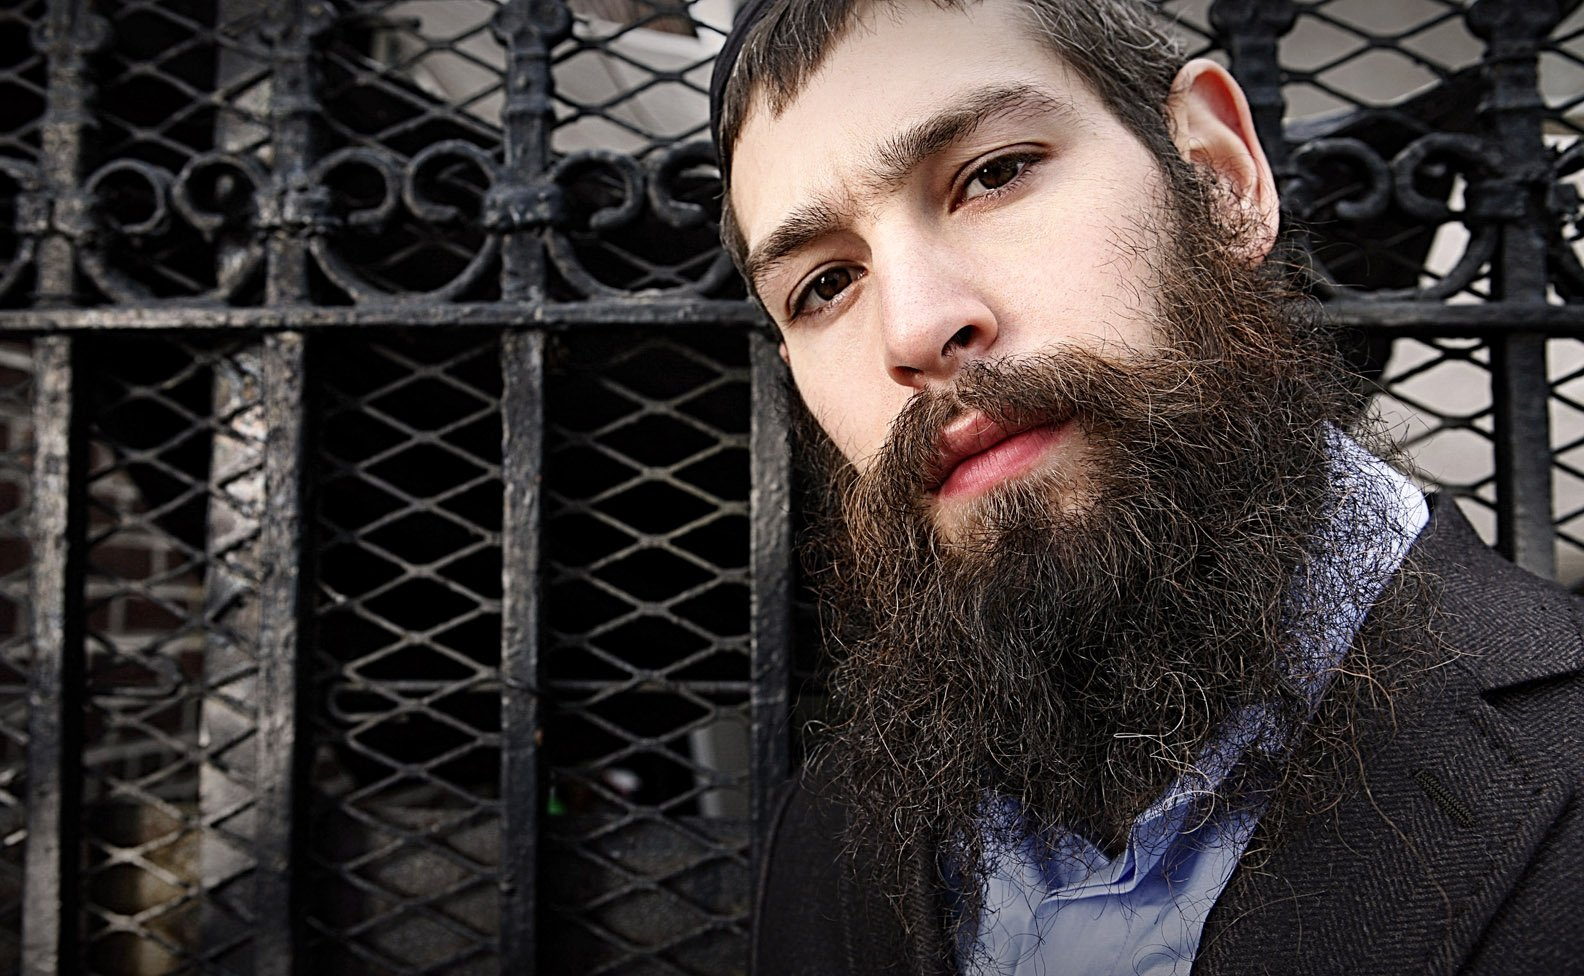 Interview: Matisyahu on Light, Spiritual Truth, and More - Slant